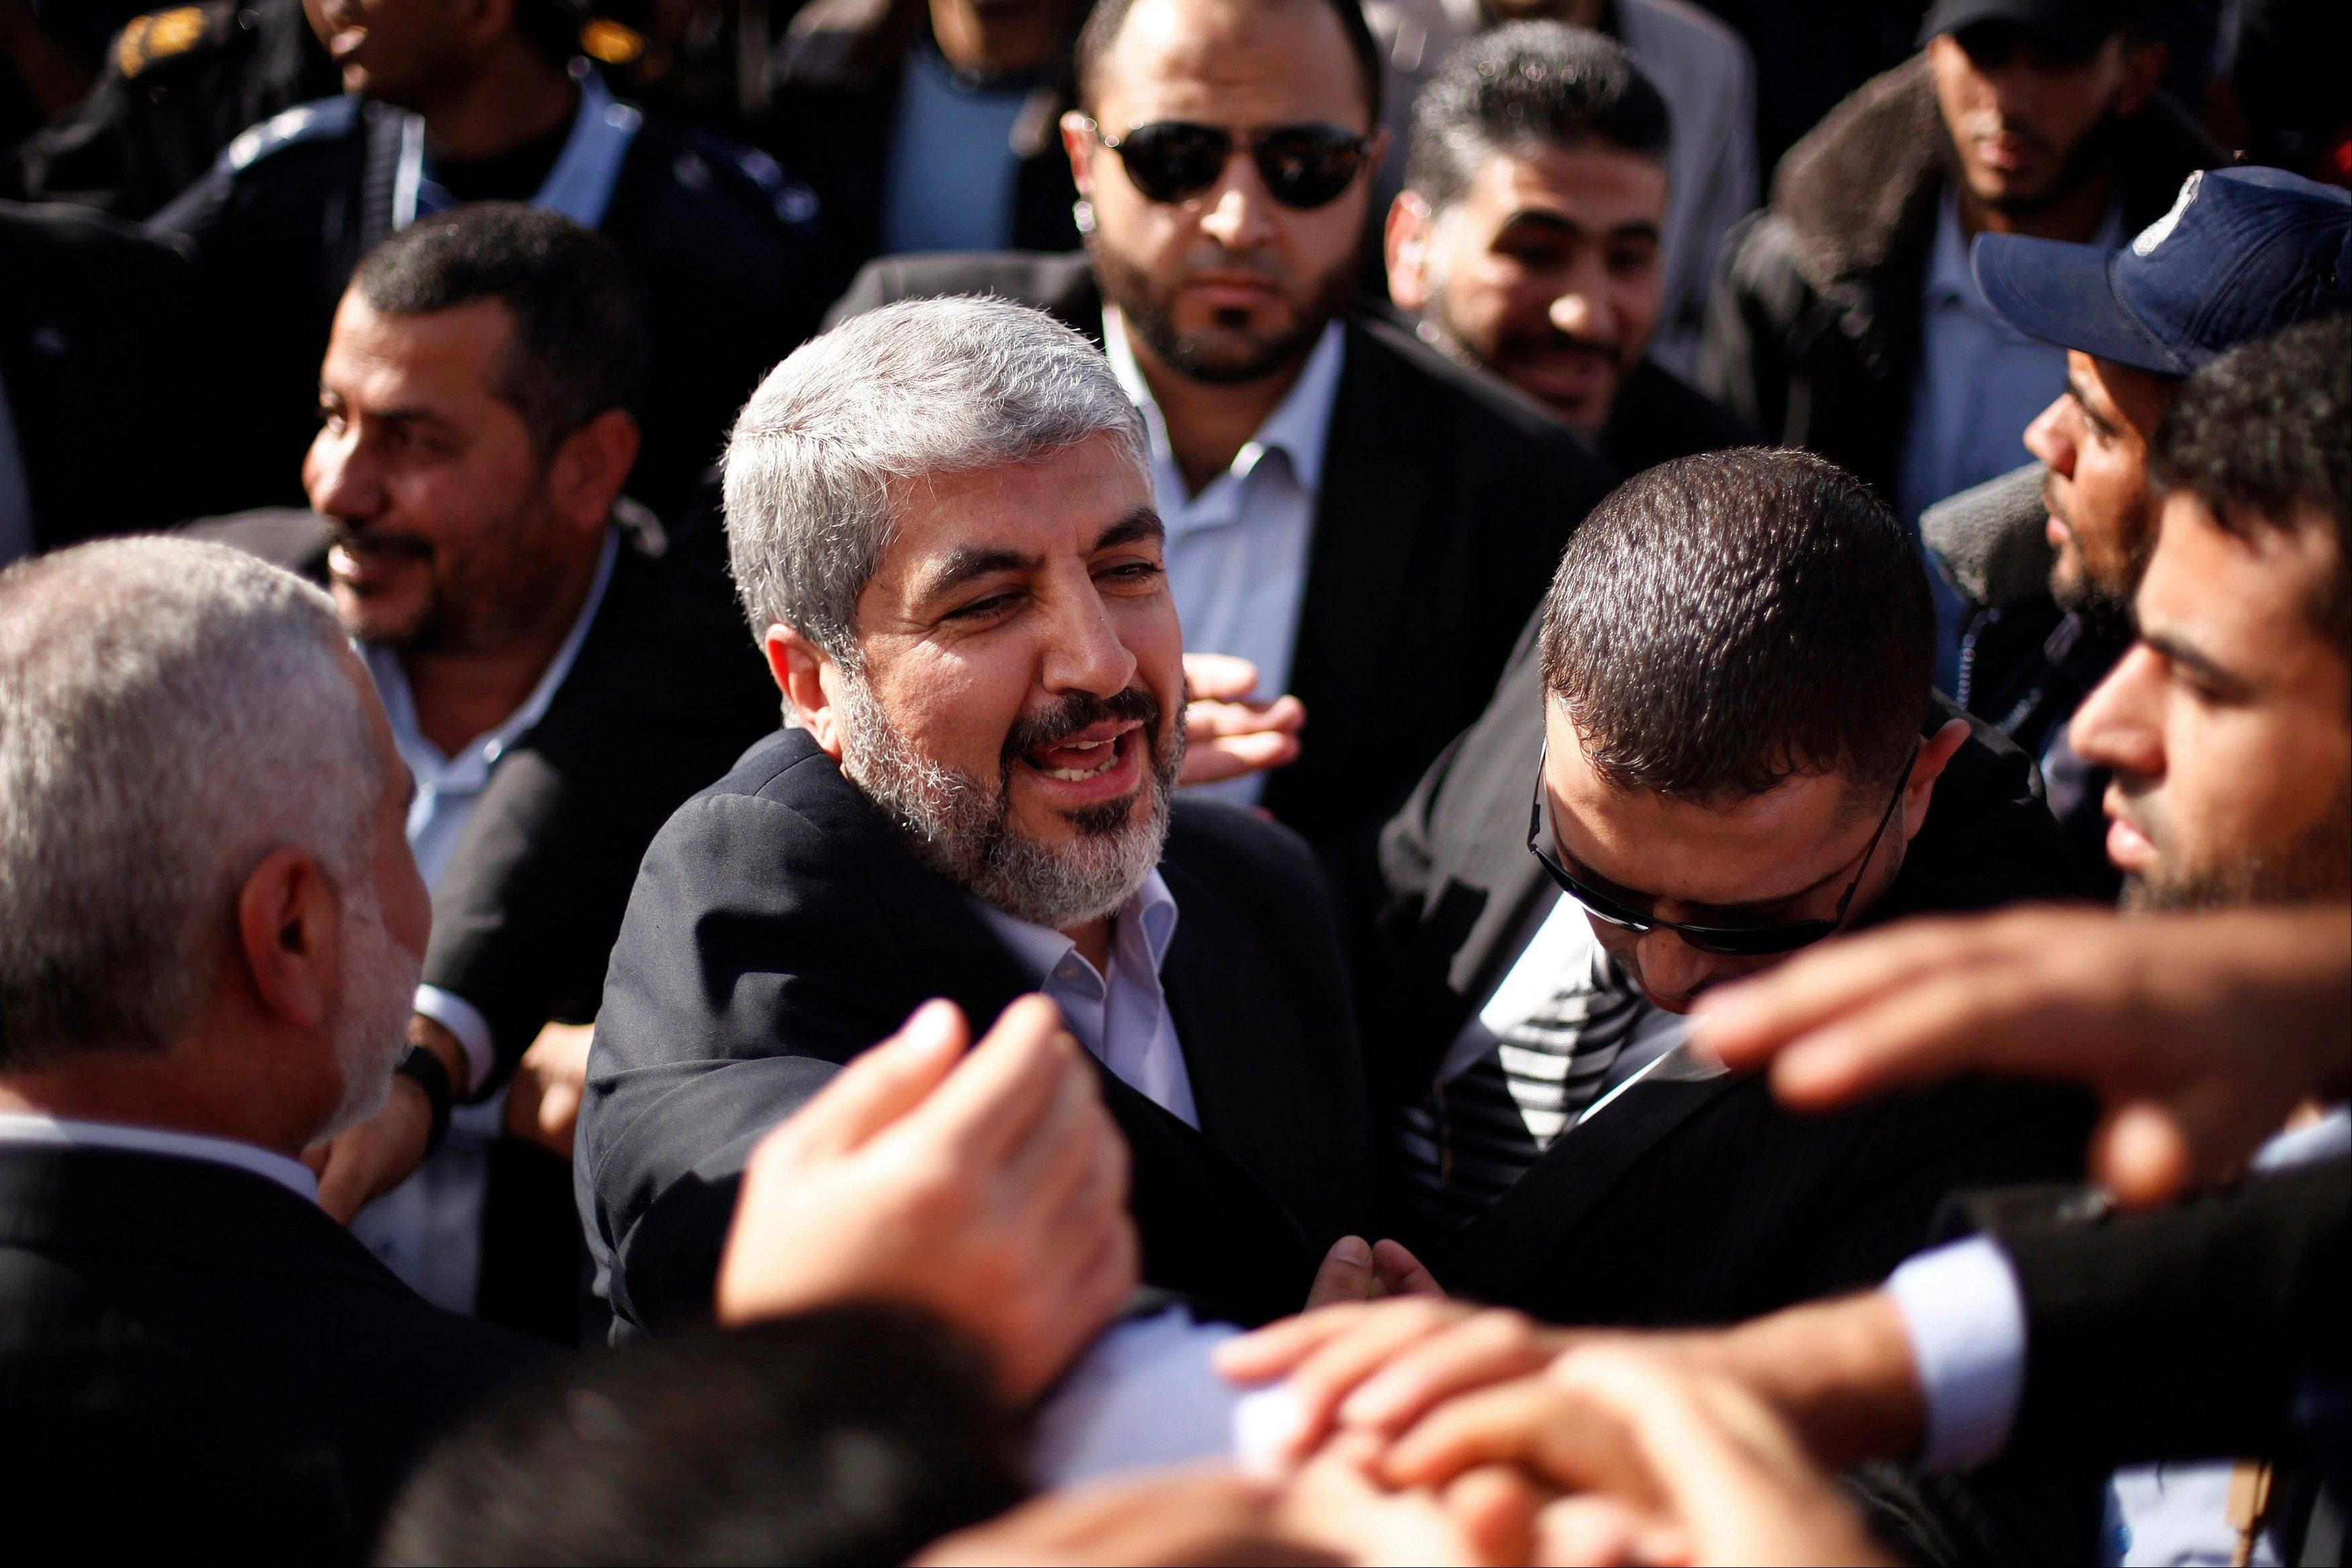 The exiled Hamas chief Khaled Mashaal shakes hands with supporters upon his arrival at Rafah crossing in the southern Gaza Strip, Friday, Dec. 7, 2012. Mashaal broke into tears Friday as he arrived in the Gaza Strip for his first-ever visit, a landmark trip reflecting his militant group�s growing international acceptance and its defiance of Israel.